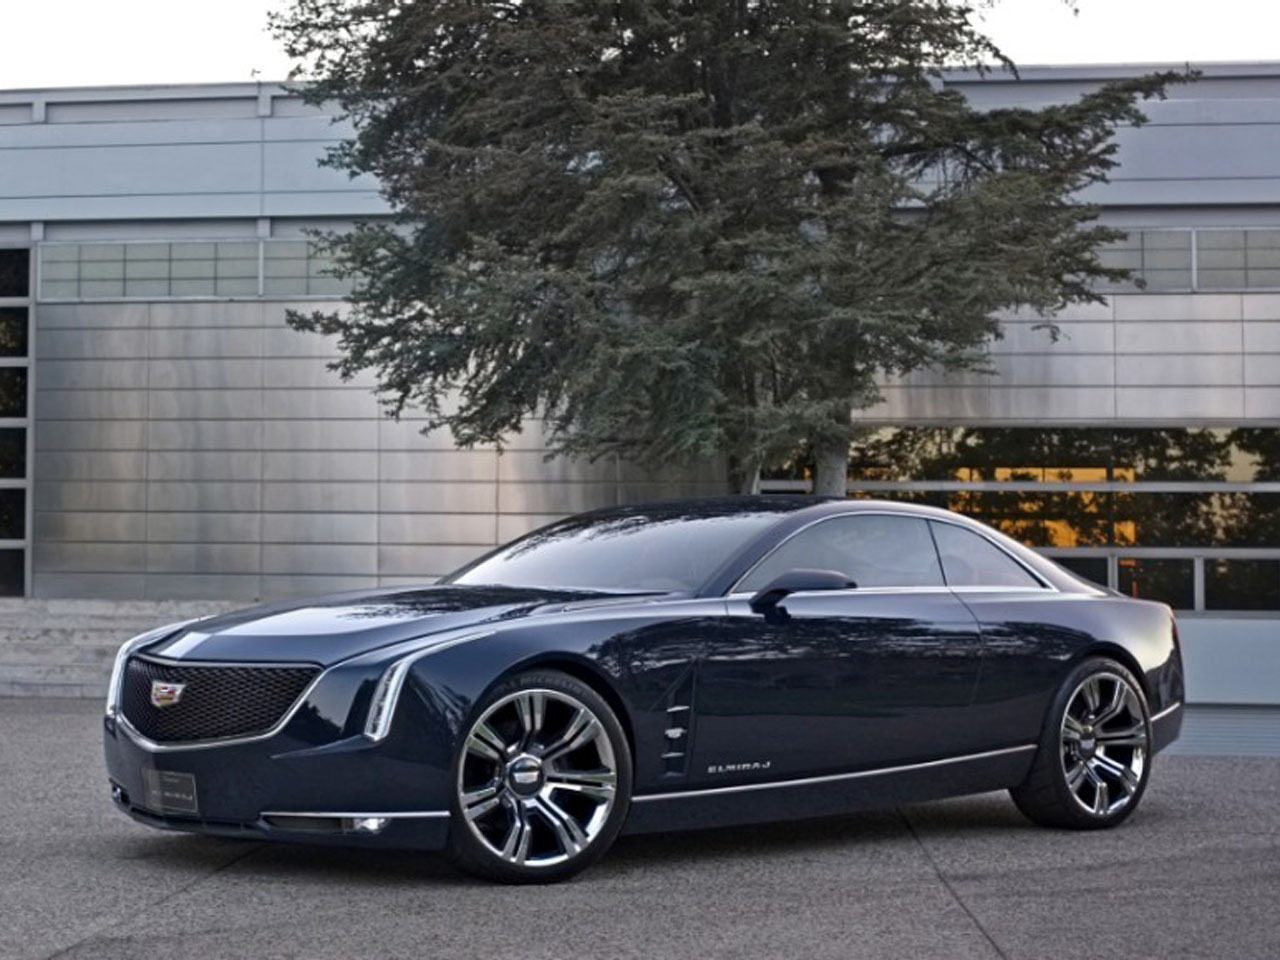 Cadillac Evening News >> Cadillac Shows Off Big Two Door Coupe Concept Car Cbs News